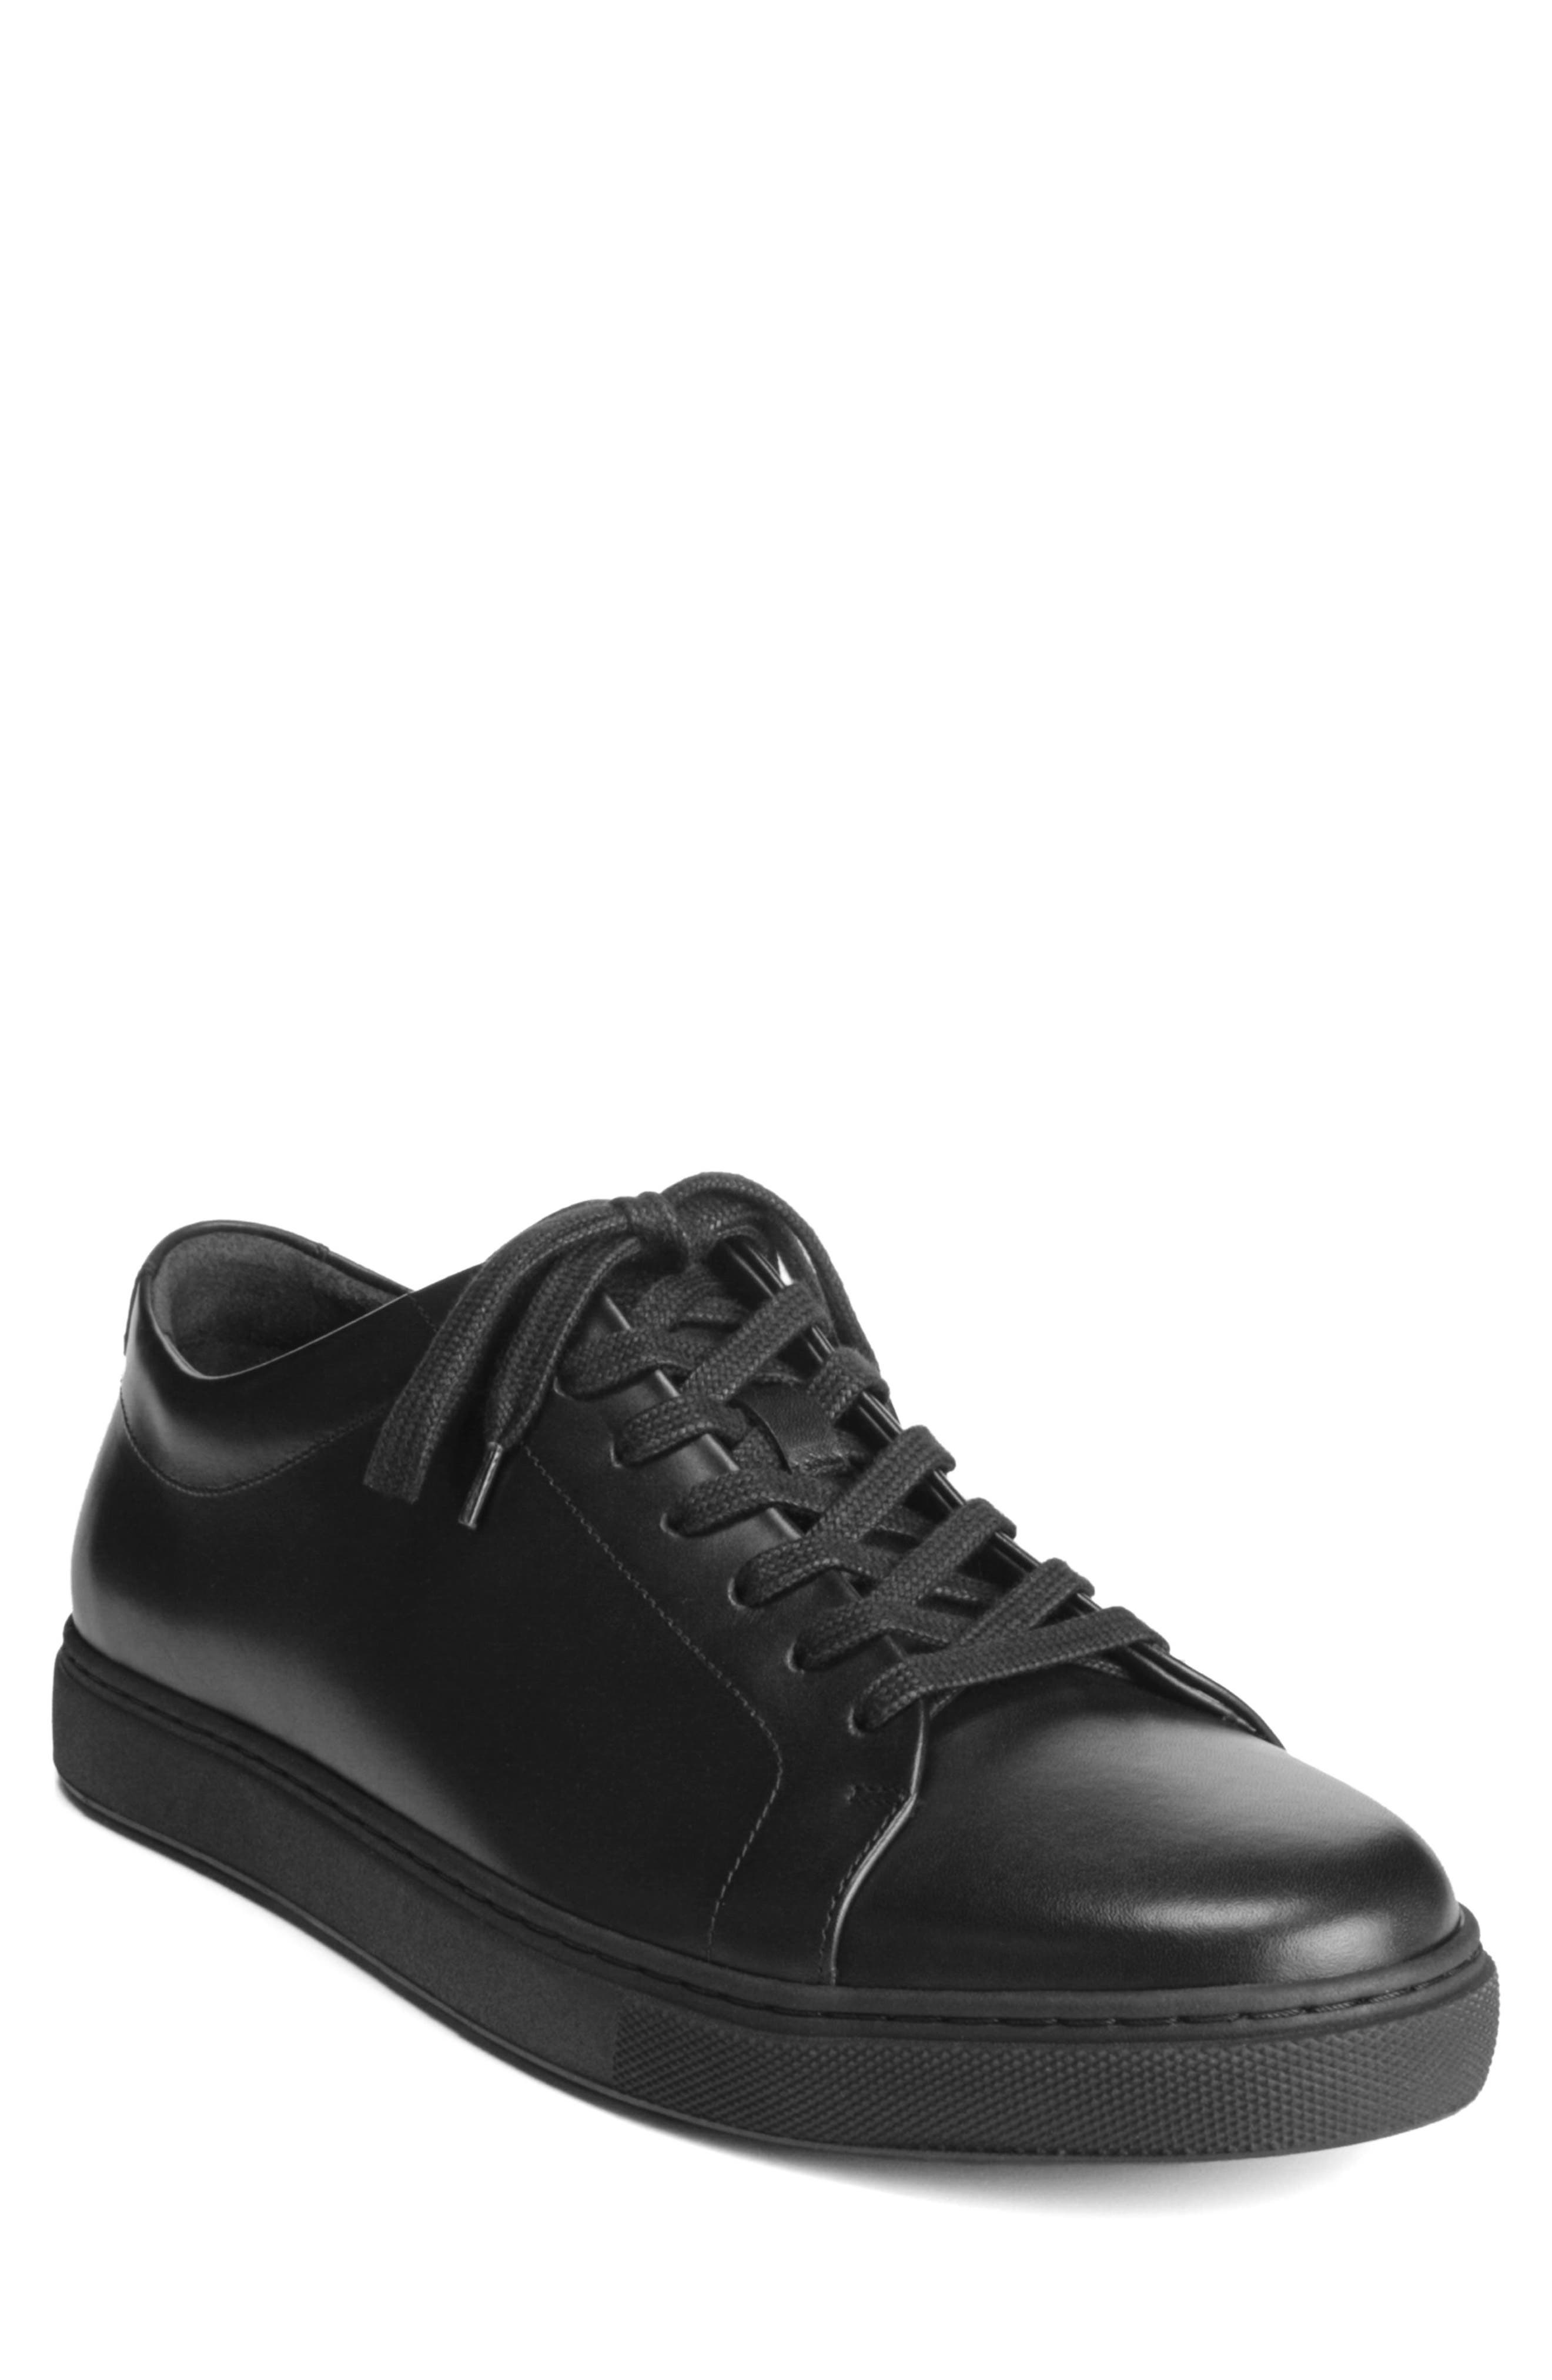 Canal Court Sneaker,                         Main,                         color, BLACK LEATHER